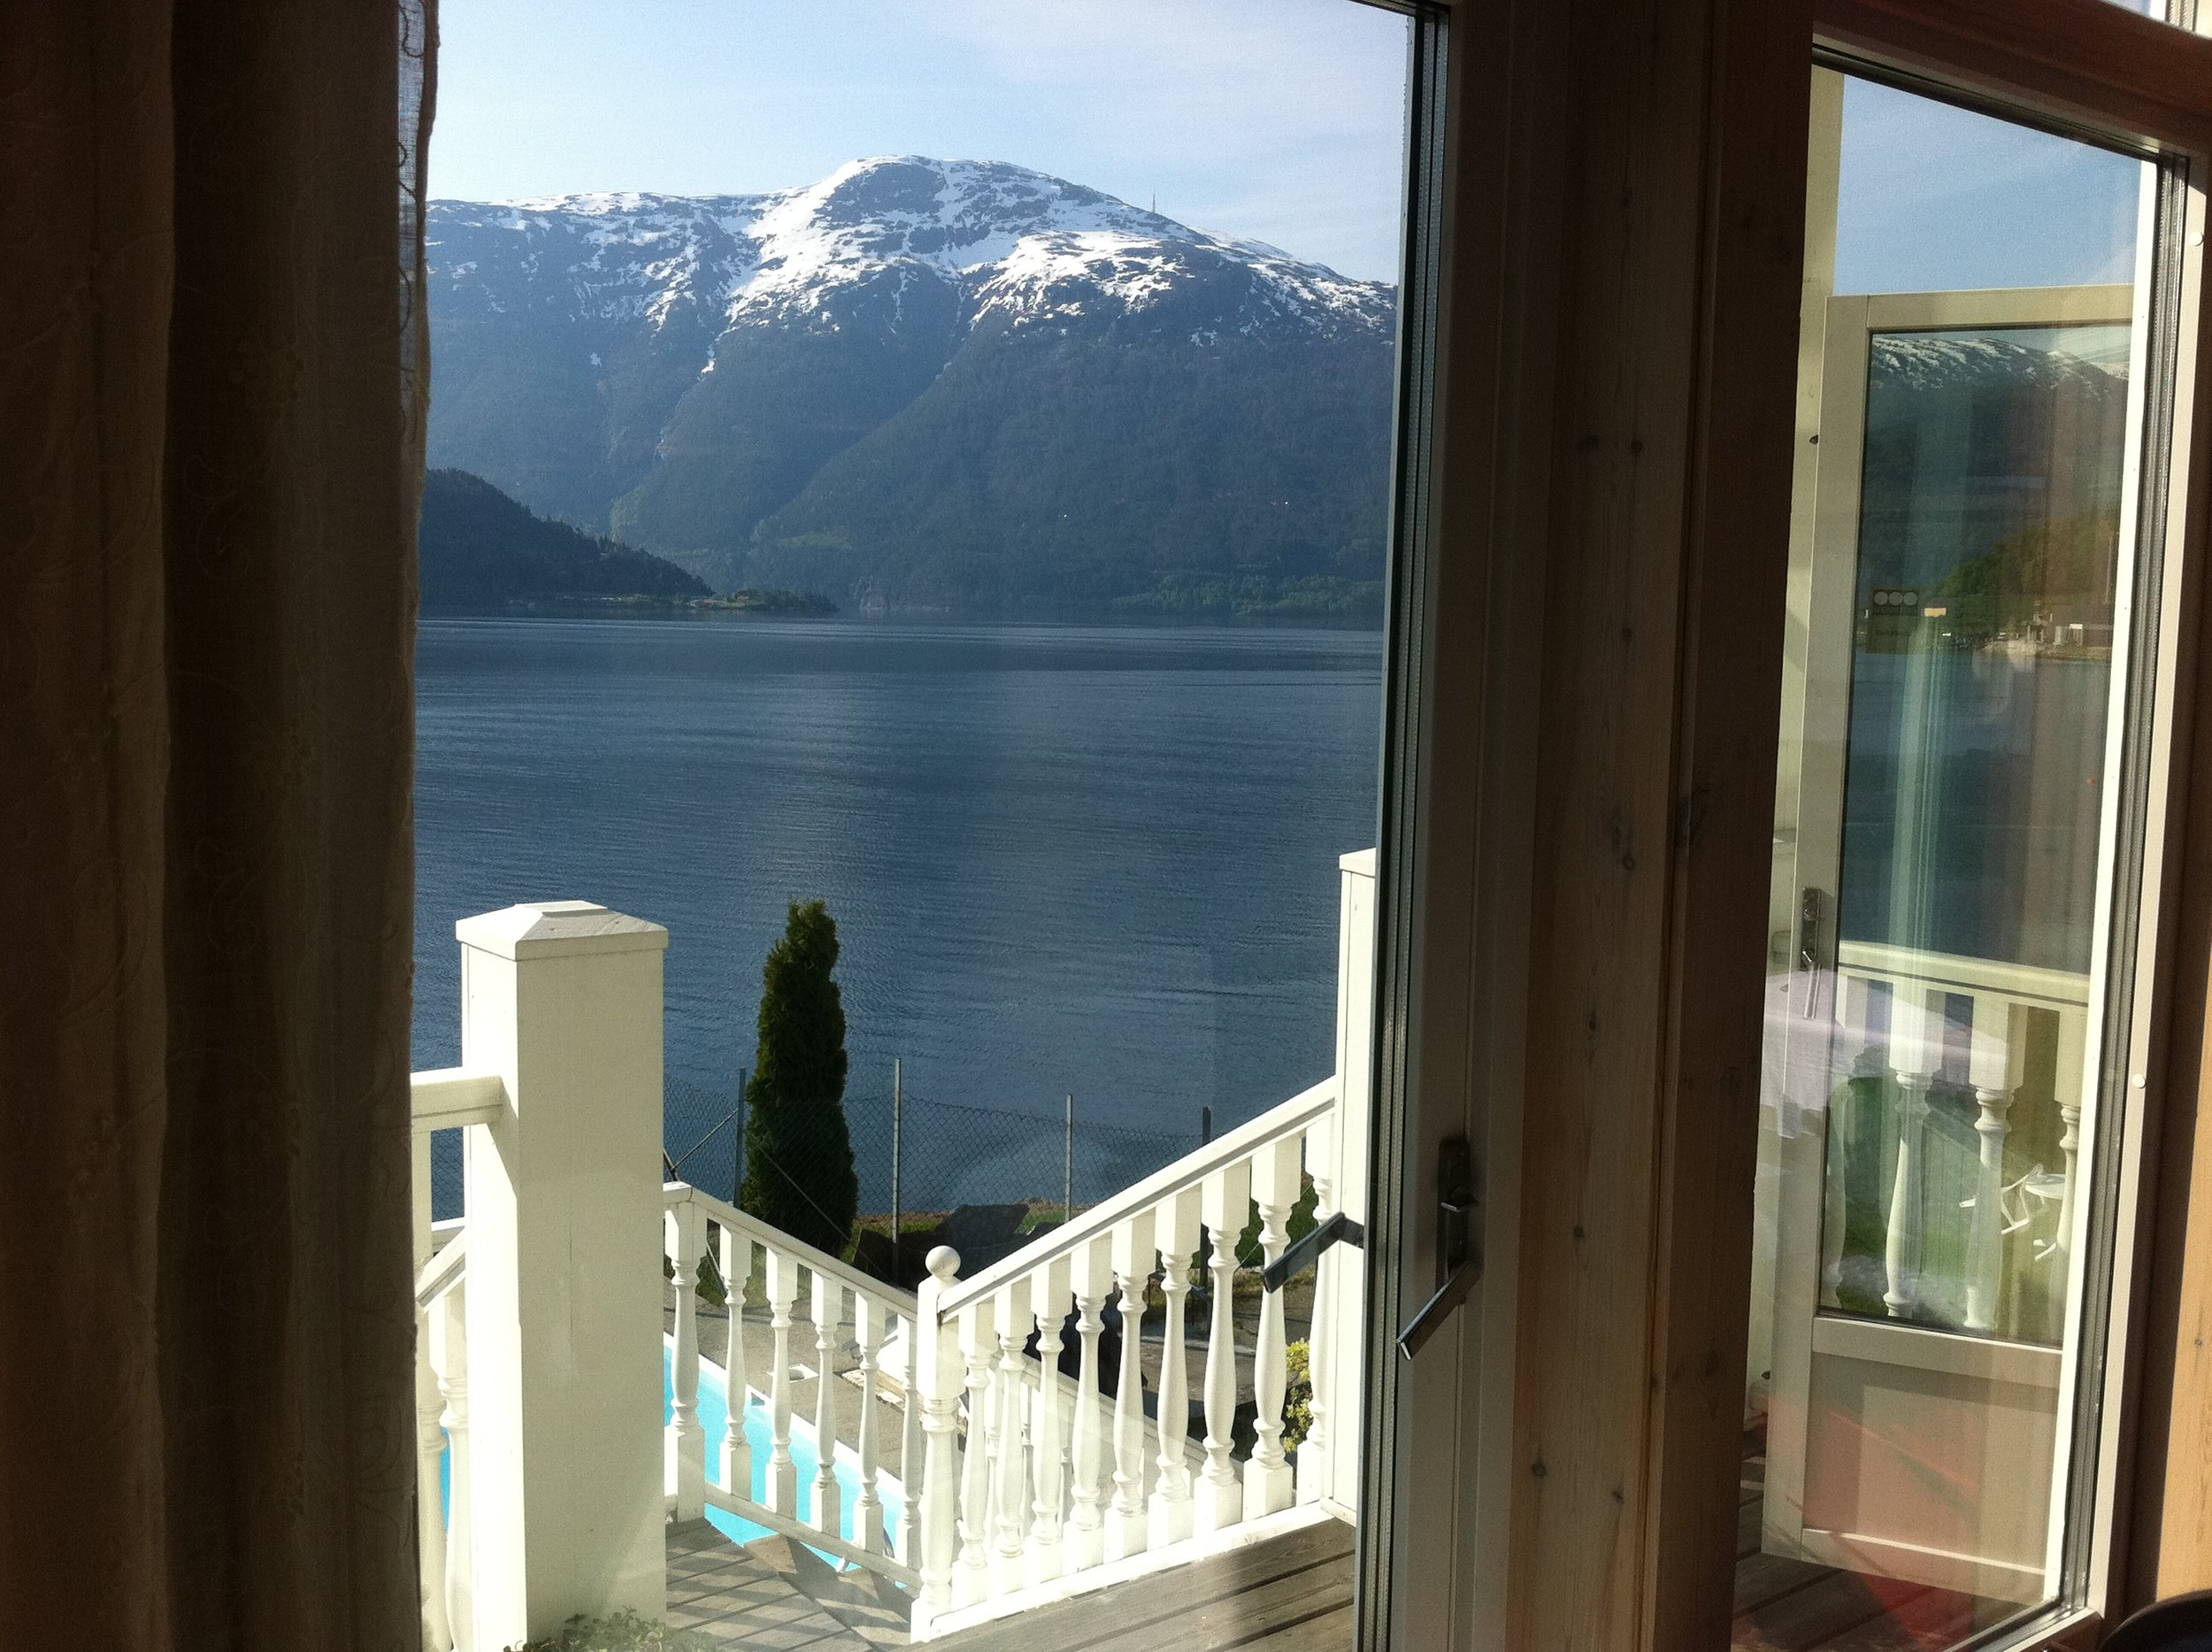 The view of the fjord from the Hofslund Hotel